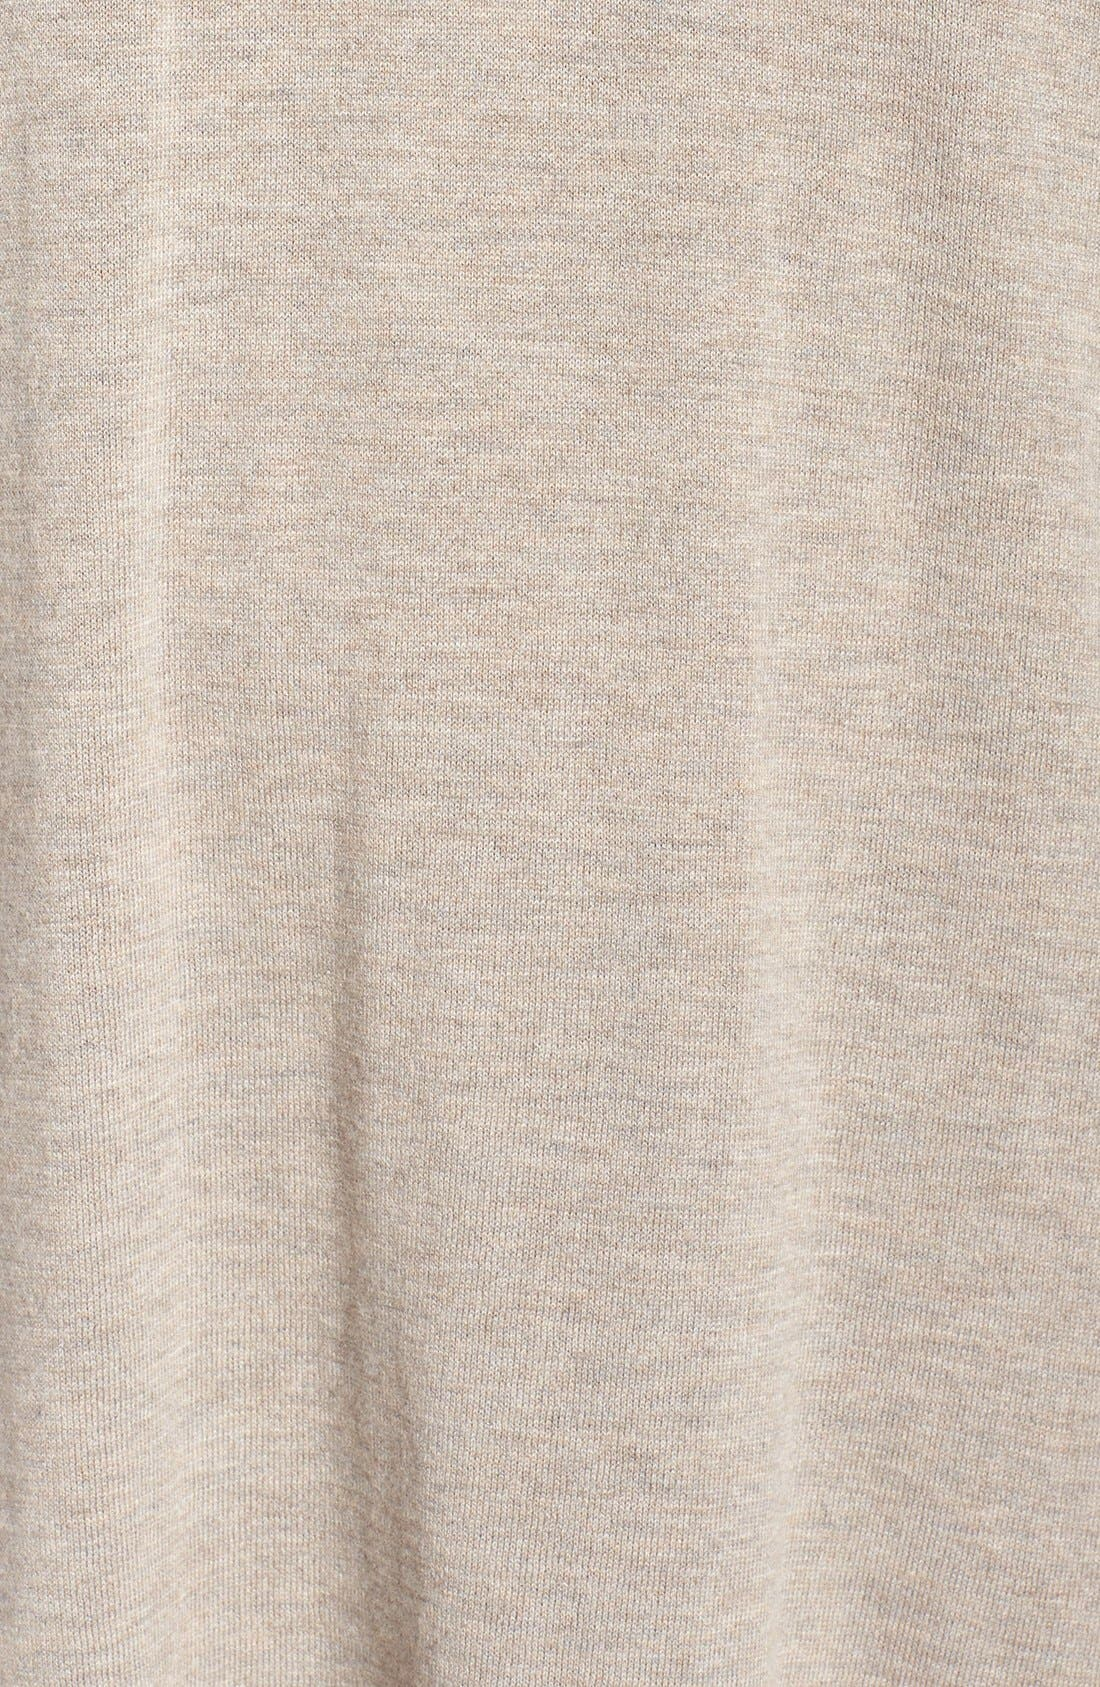 Cowl Neck Tunic Sweater,                             Alternate thumbnail 40, color,